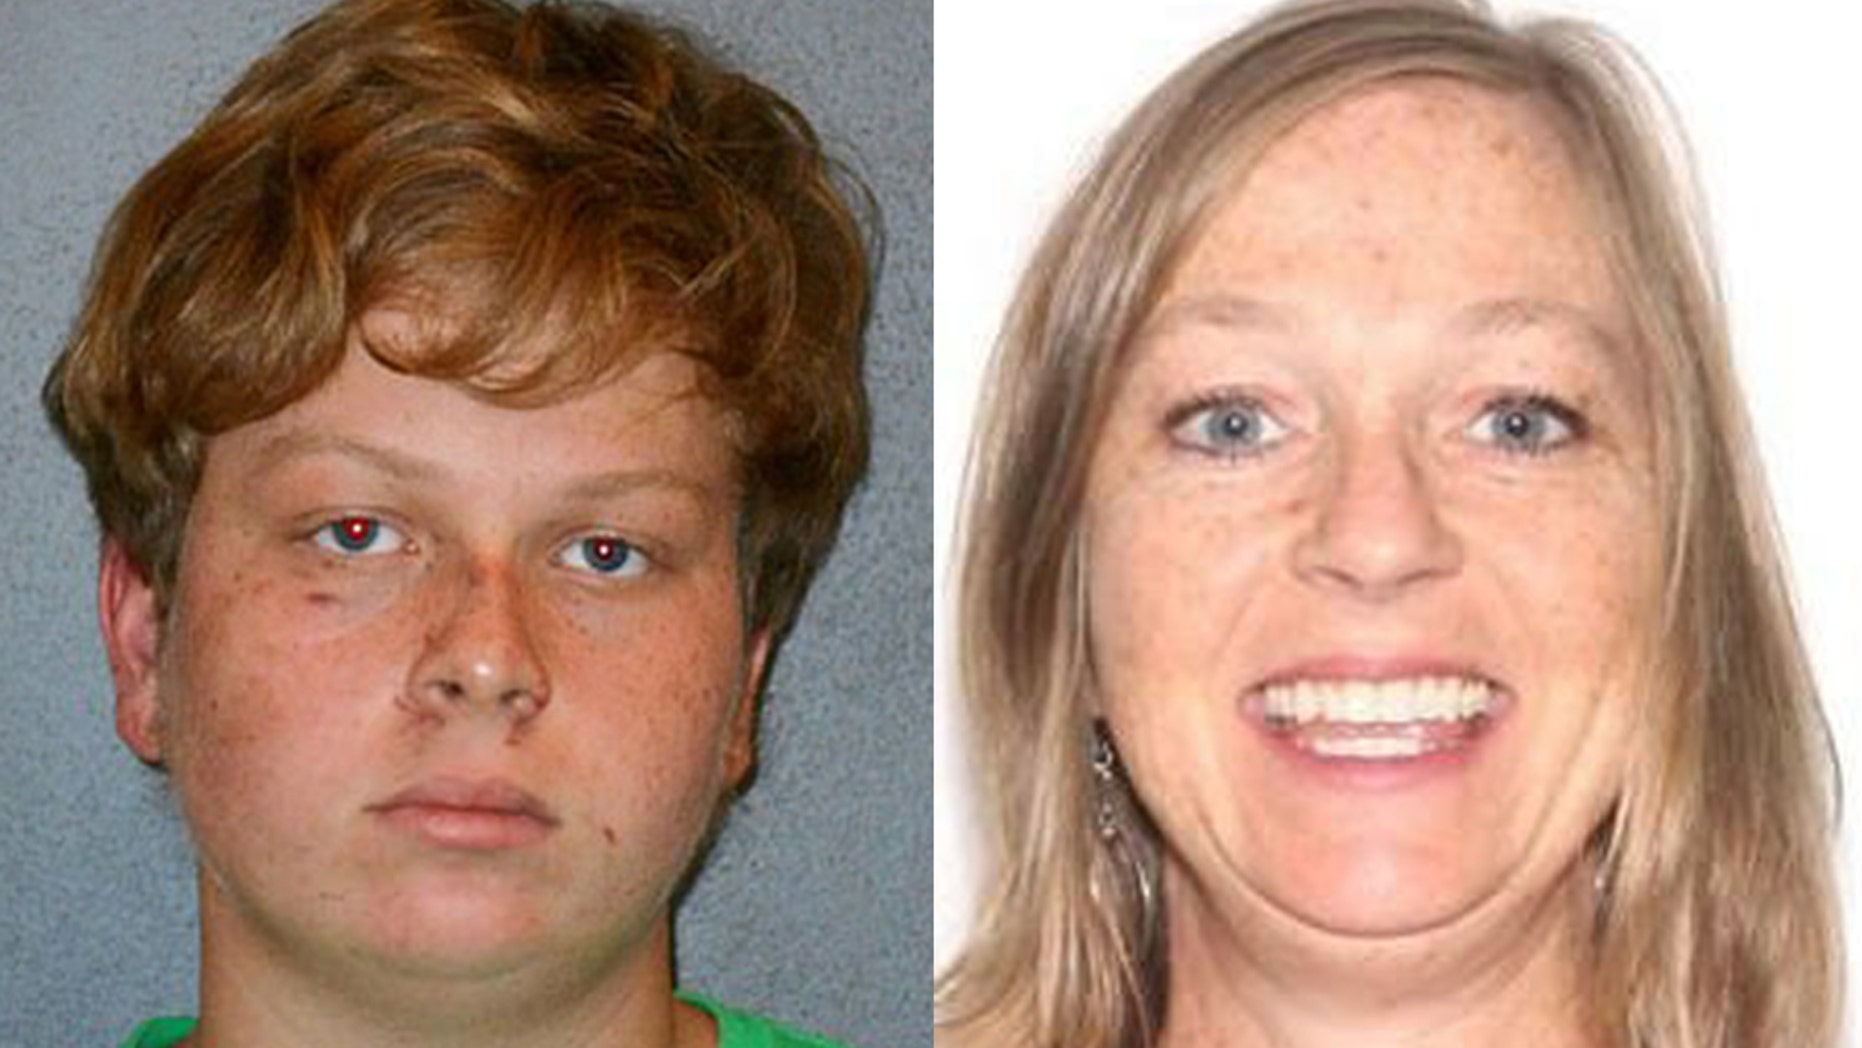 Florida Teen Allegedly Strangled His Mom Over Bad Grade: 'A Soulless Individual'